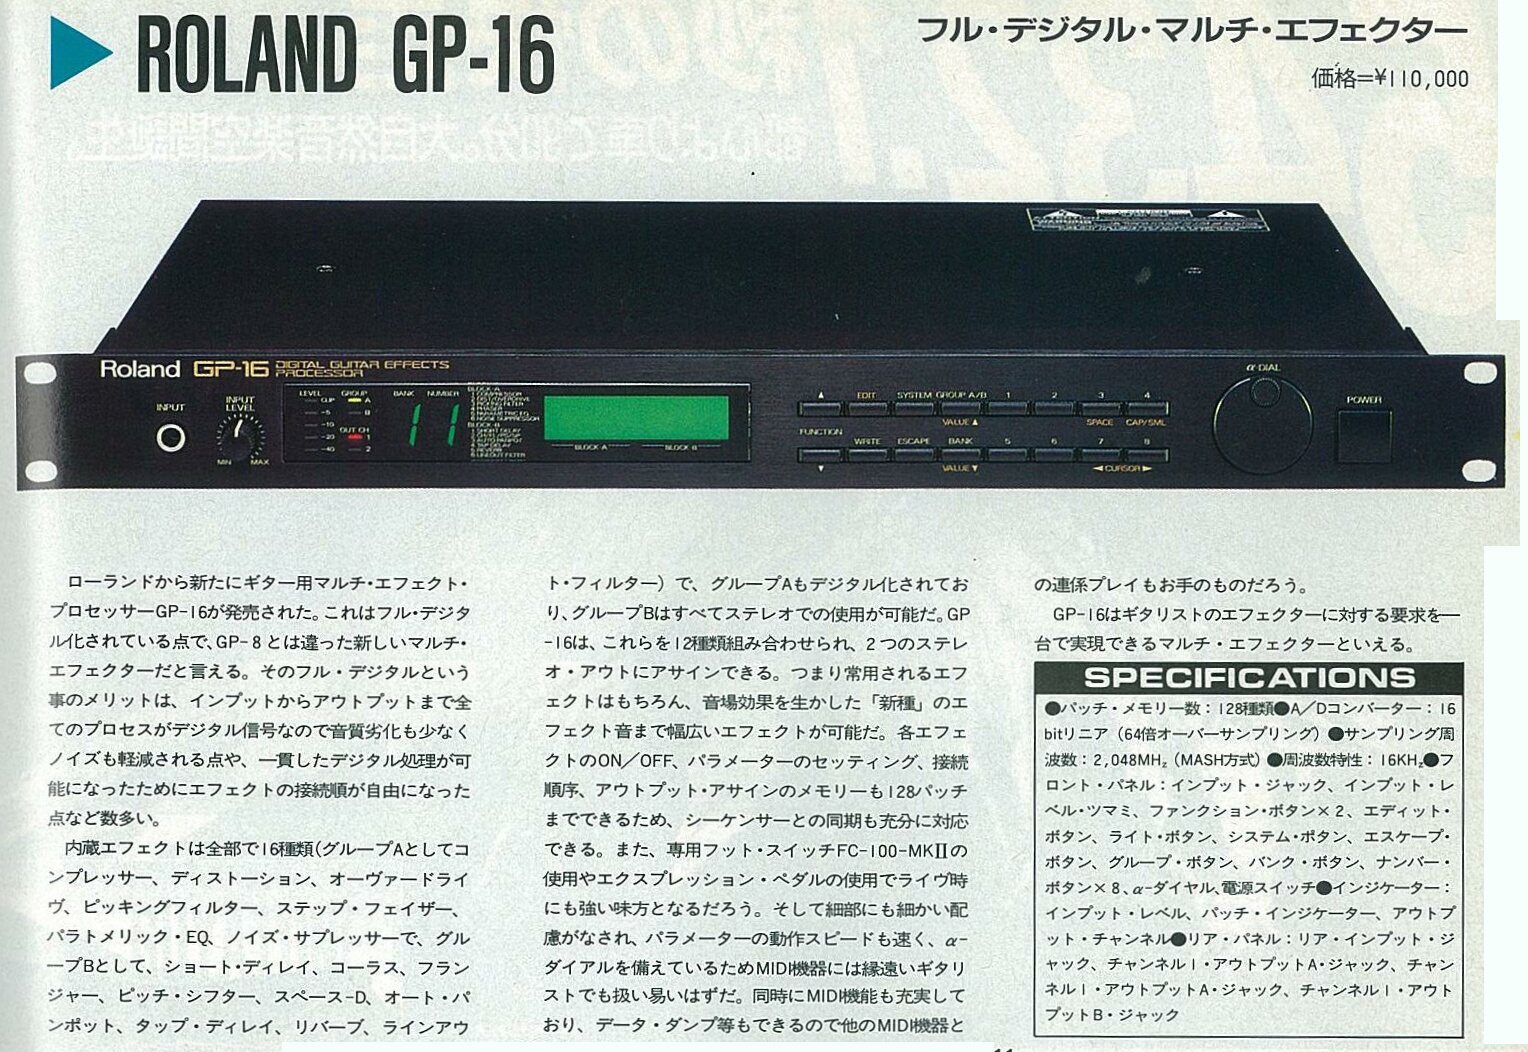 roland gp 8 gp 16 guitar effects processors jim atwood in japan rh jimatwood wordpress com roland gp-8 service manual roland gp-8 user manual